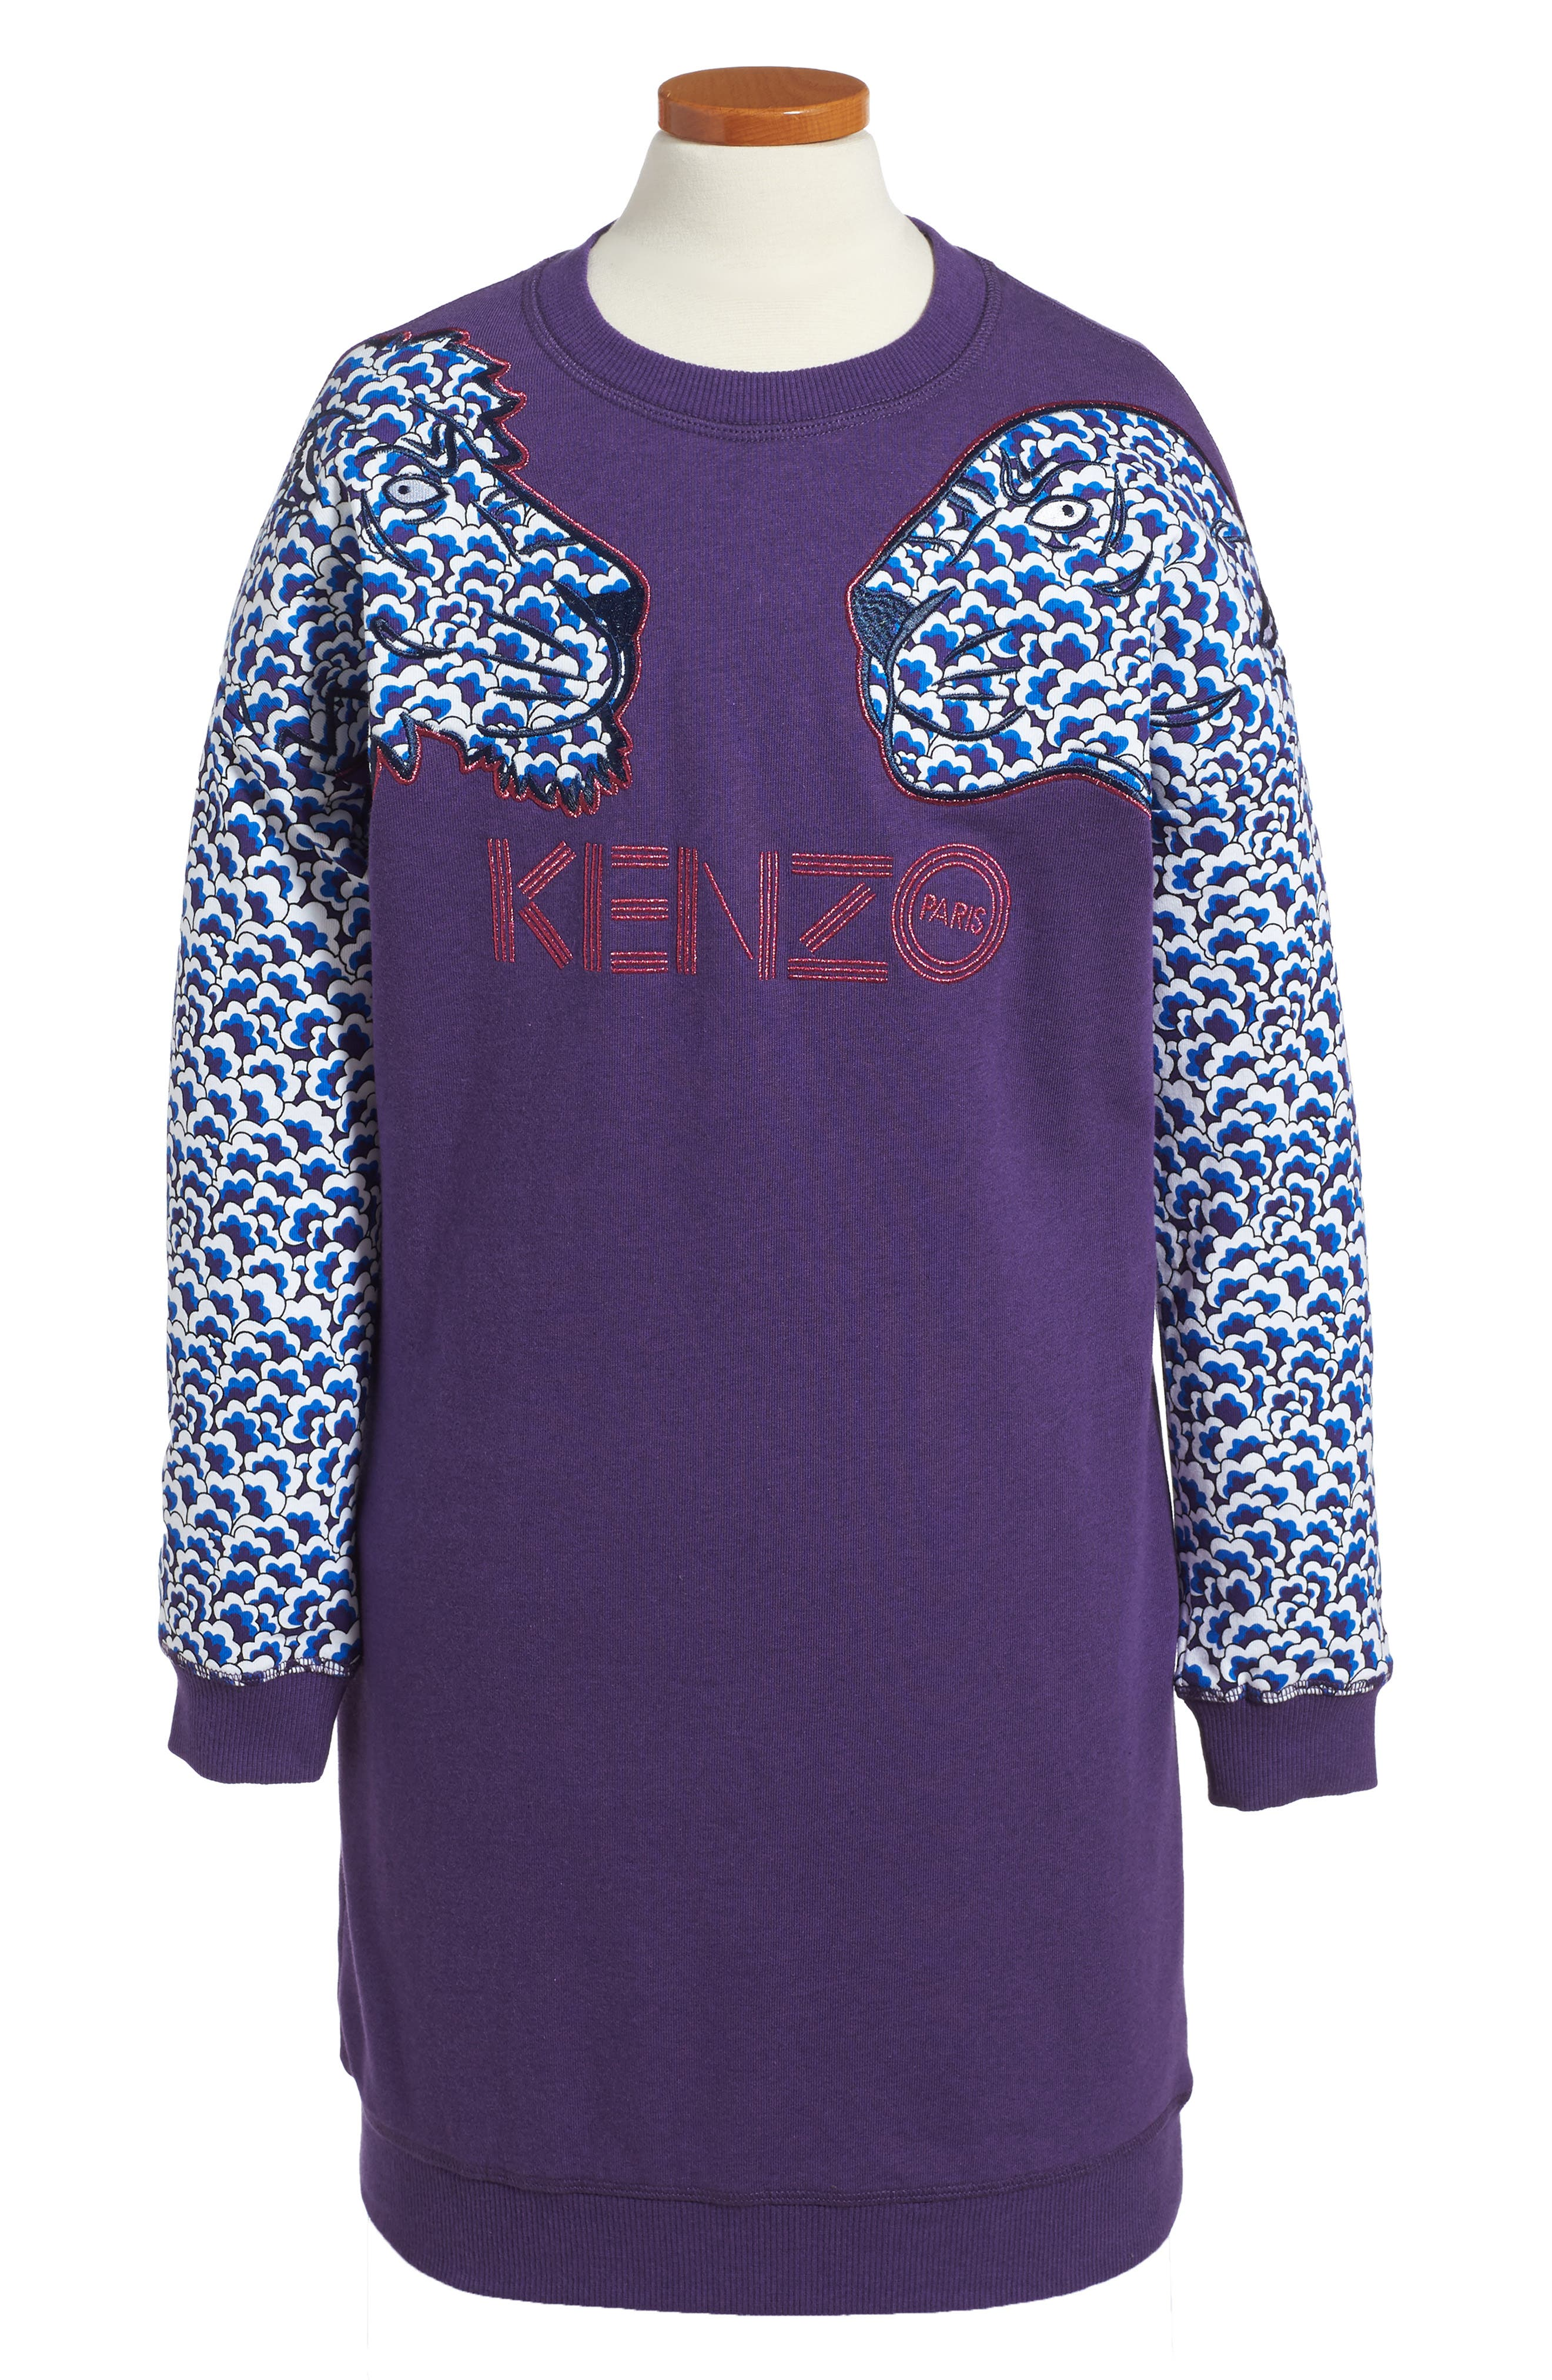 KENZO Tiger Sleeve Sweatshirt Dress (Toddler Girls, Little Girls & Big Girls)